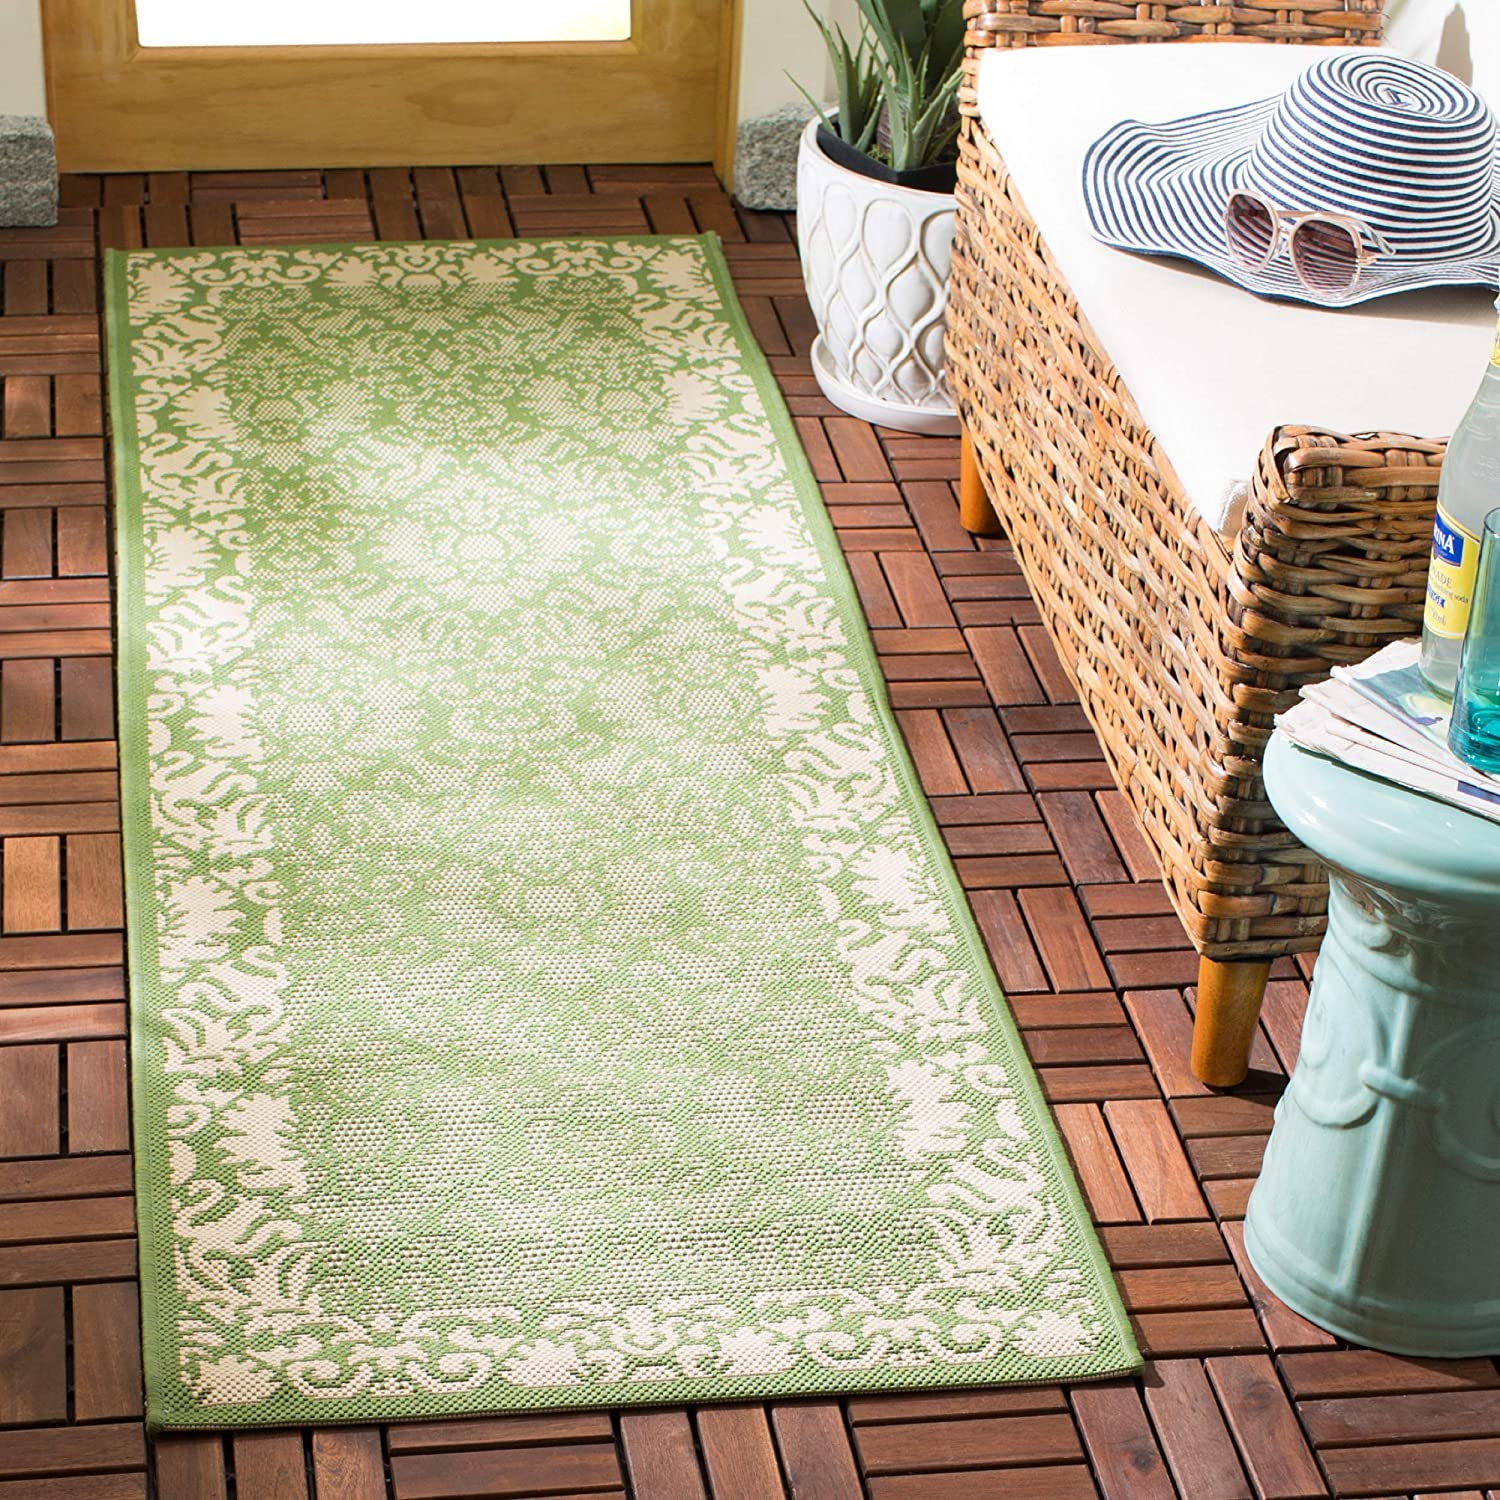 Amazon Com Safavieh Courtyard Collection Cy2727 Indoor Outdoor Non Shedding Stain Resistant Patio Backyard Runner 2 3 X 6 7 Olive Natural Furniture Decor